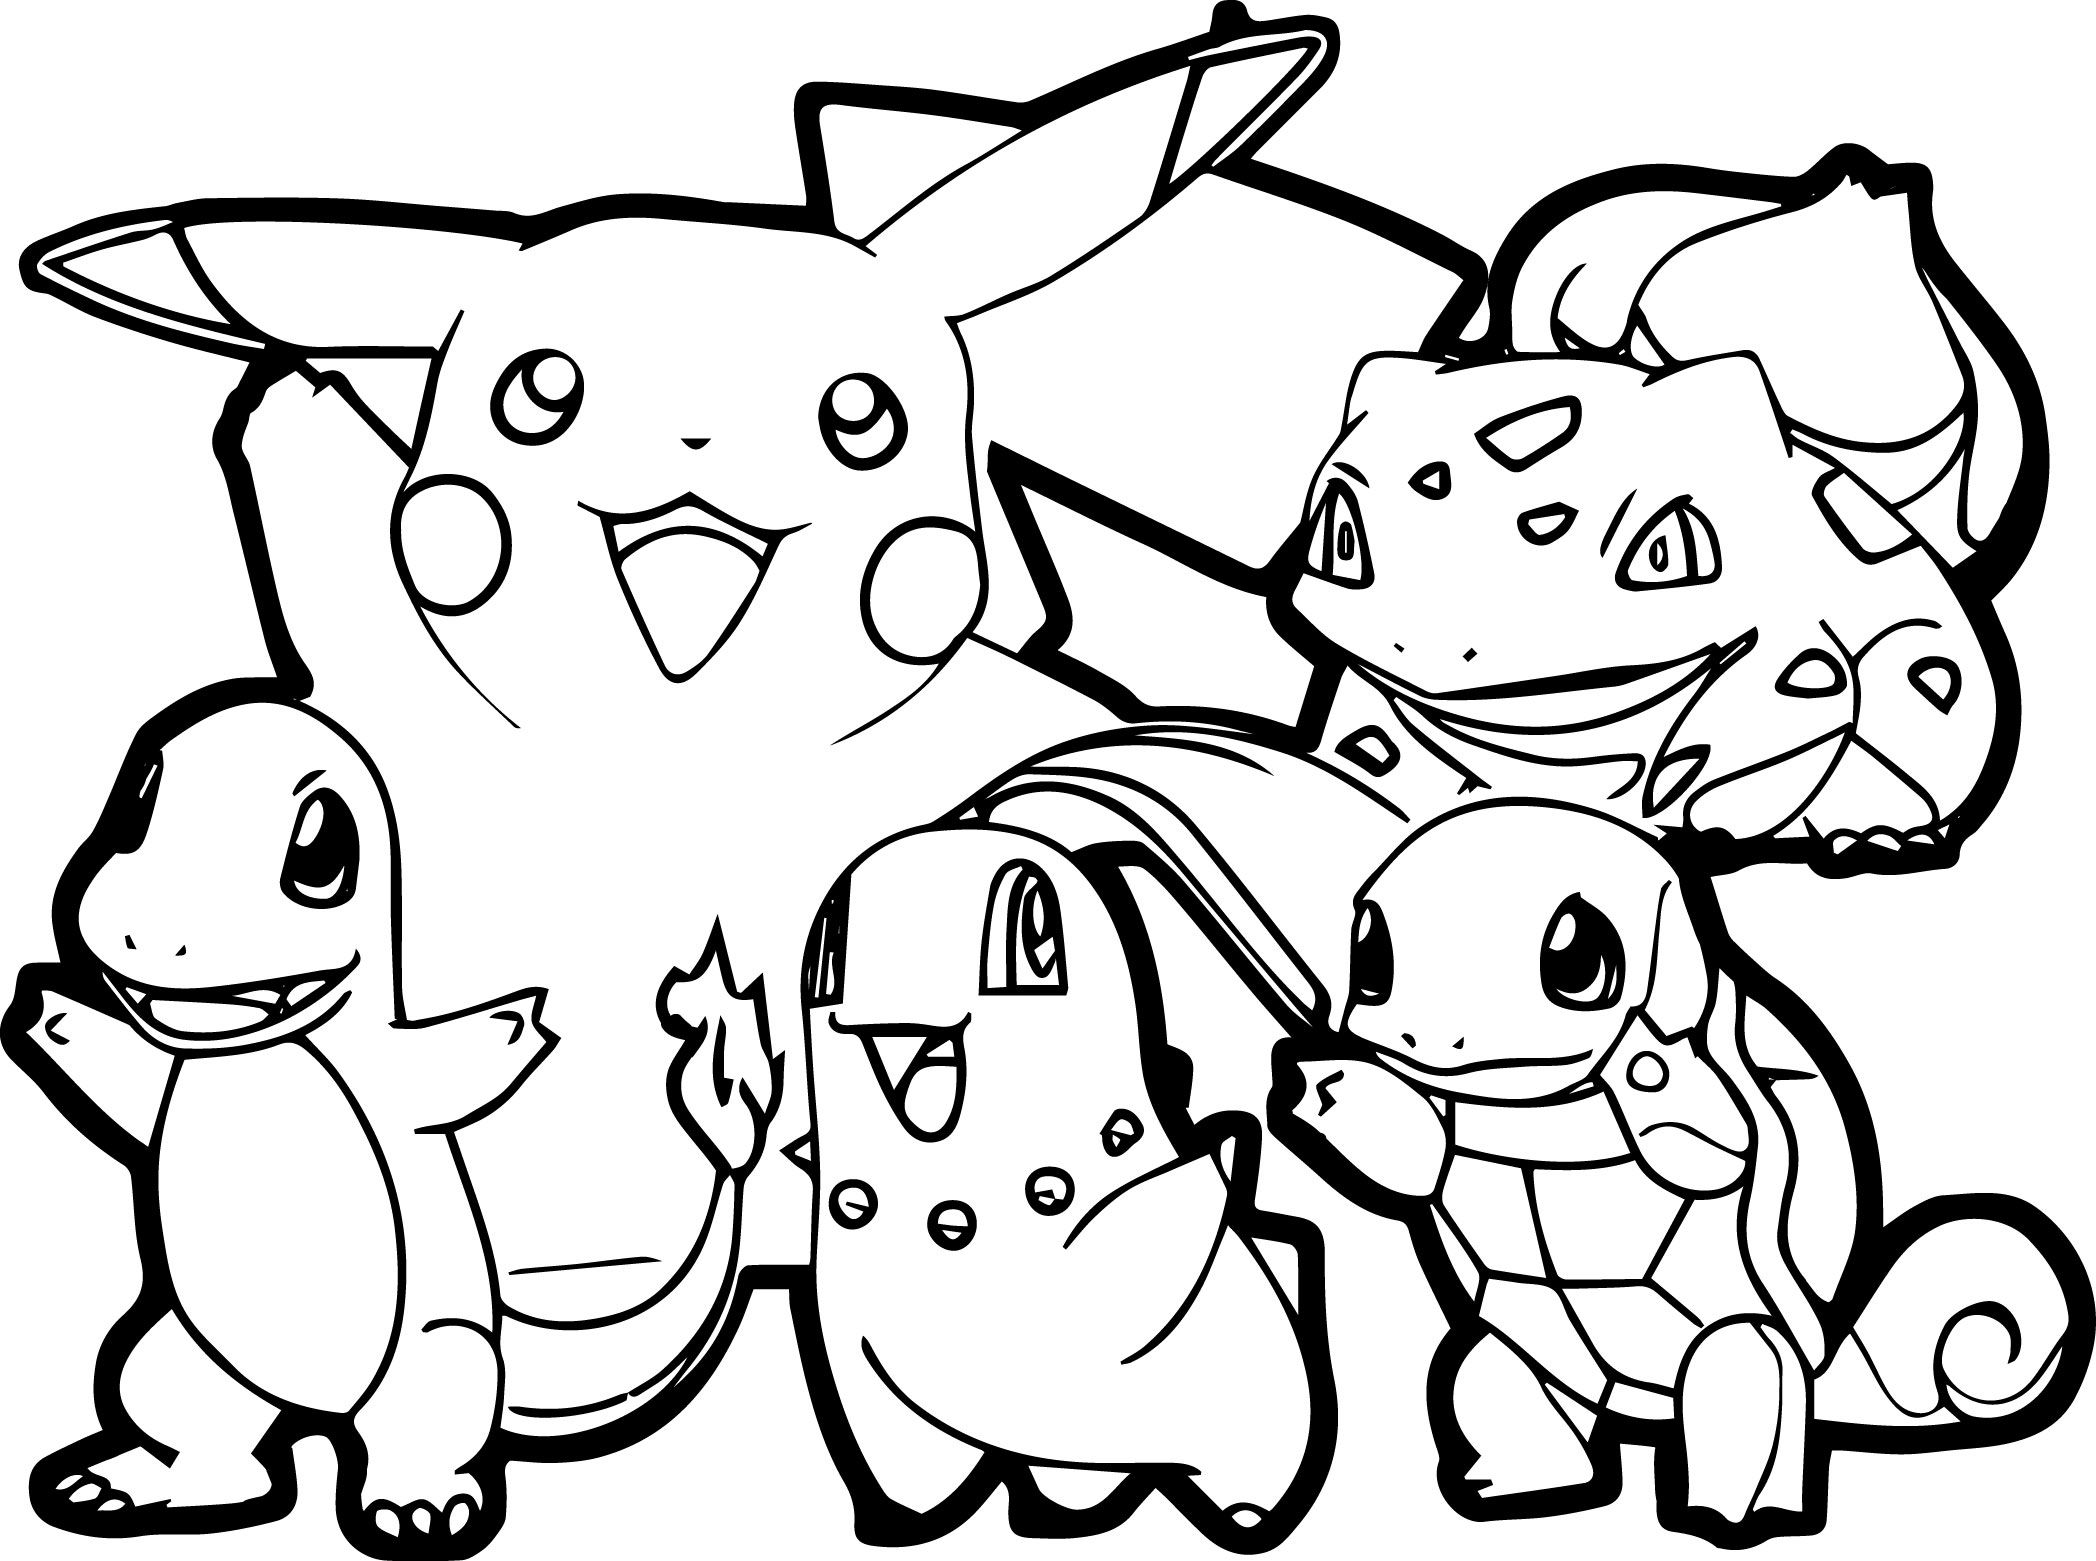 Coloriage Pour Enfants Coloriage Pokemon Traits Epais Coloriage